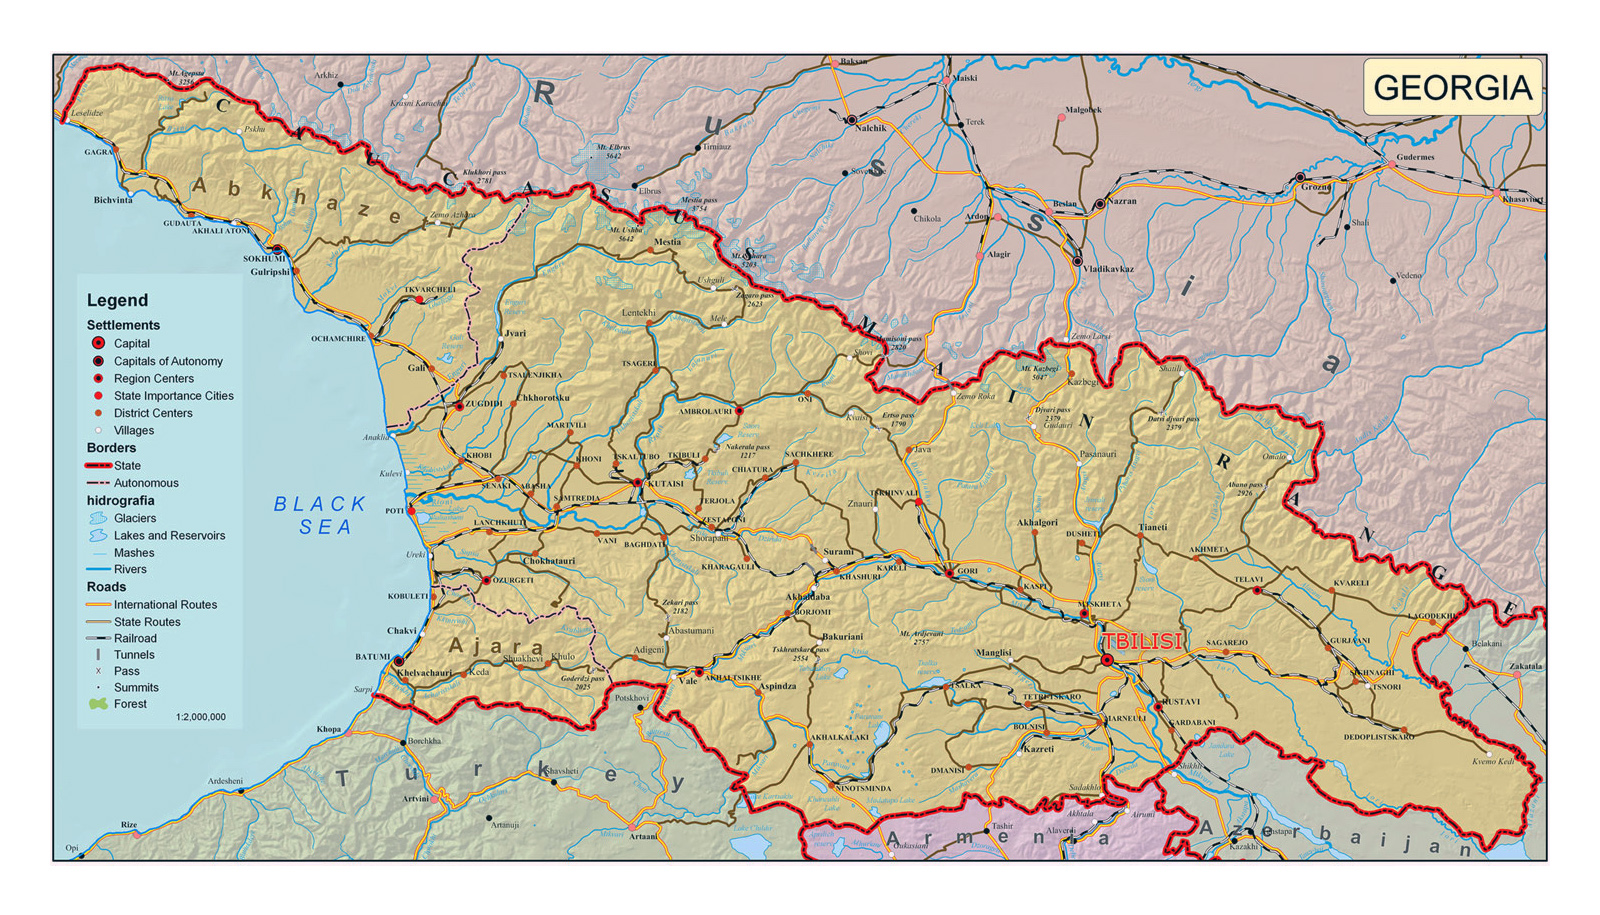 maps of georgia  detailed map of georgia in english  tourist map  - detailed political map of georgia with relief roads and cities